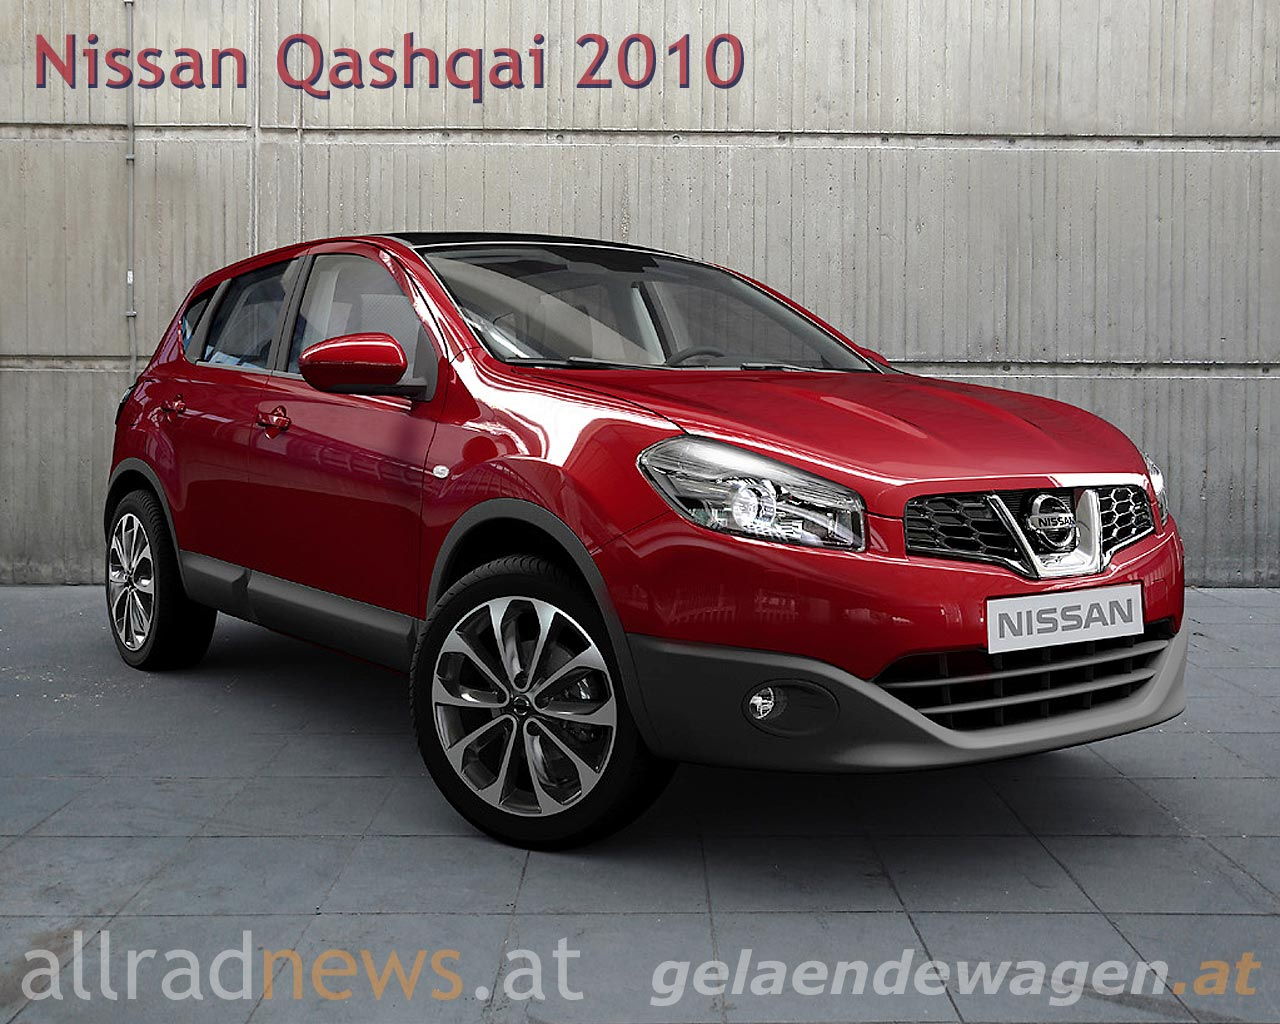 facelift f r den nissan qashqai. Black Bedroom Furniture Sets. Home Design Ideas